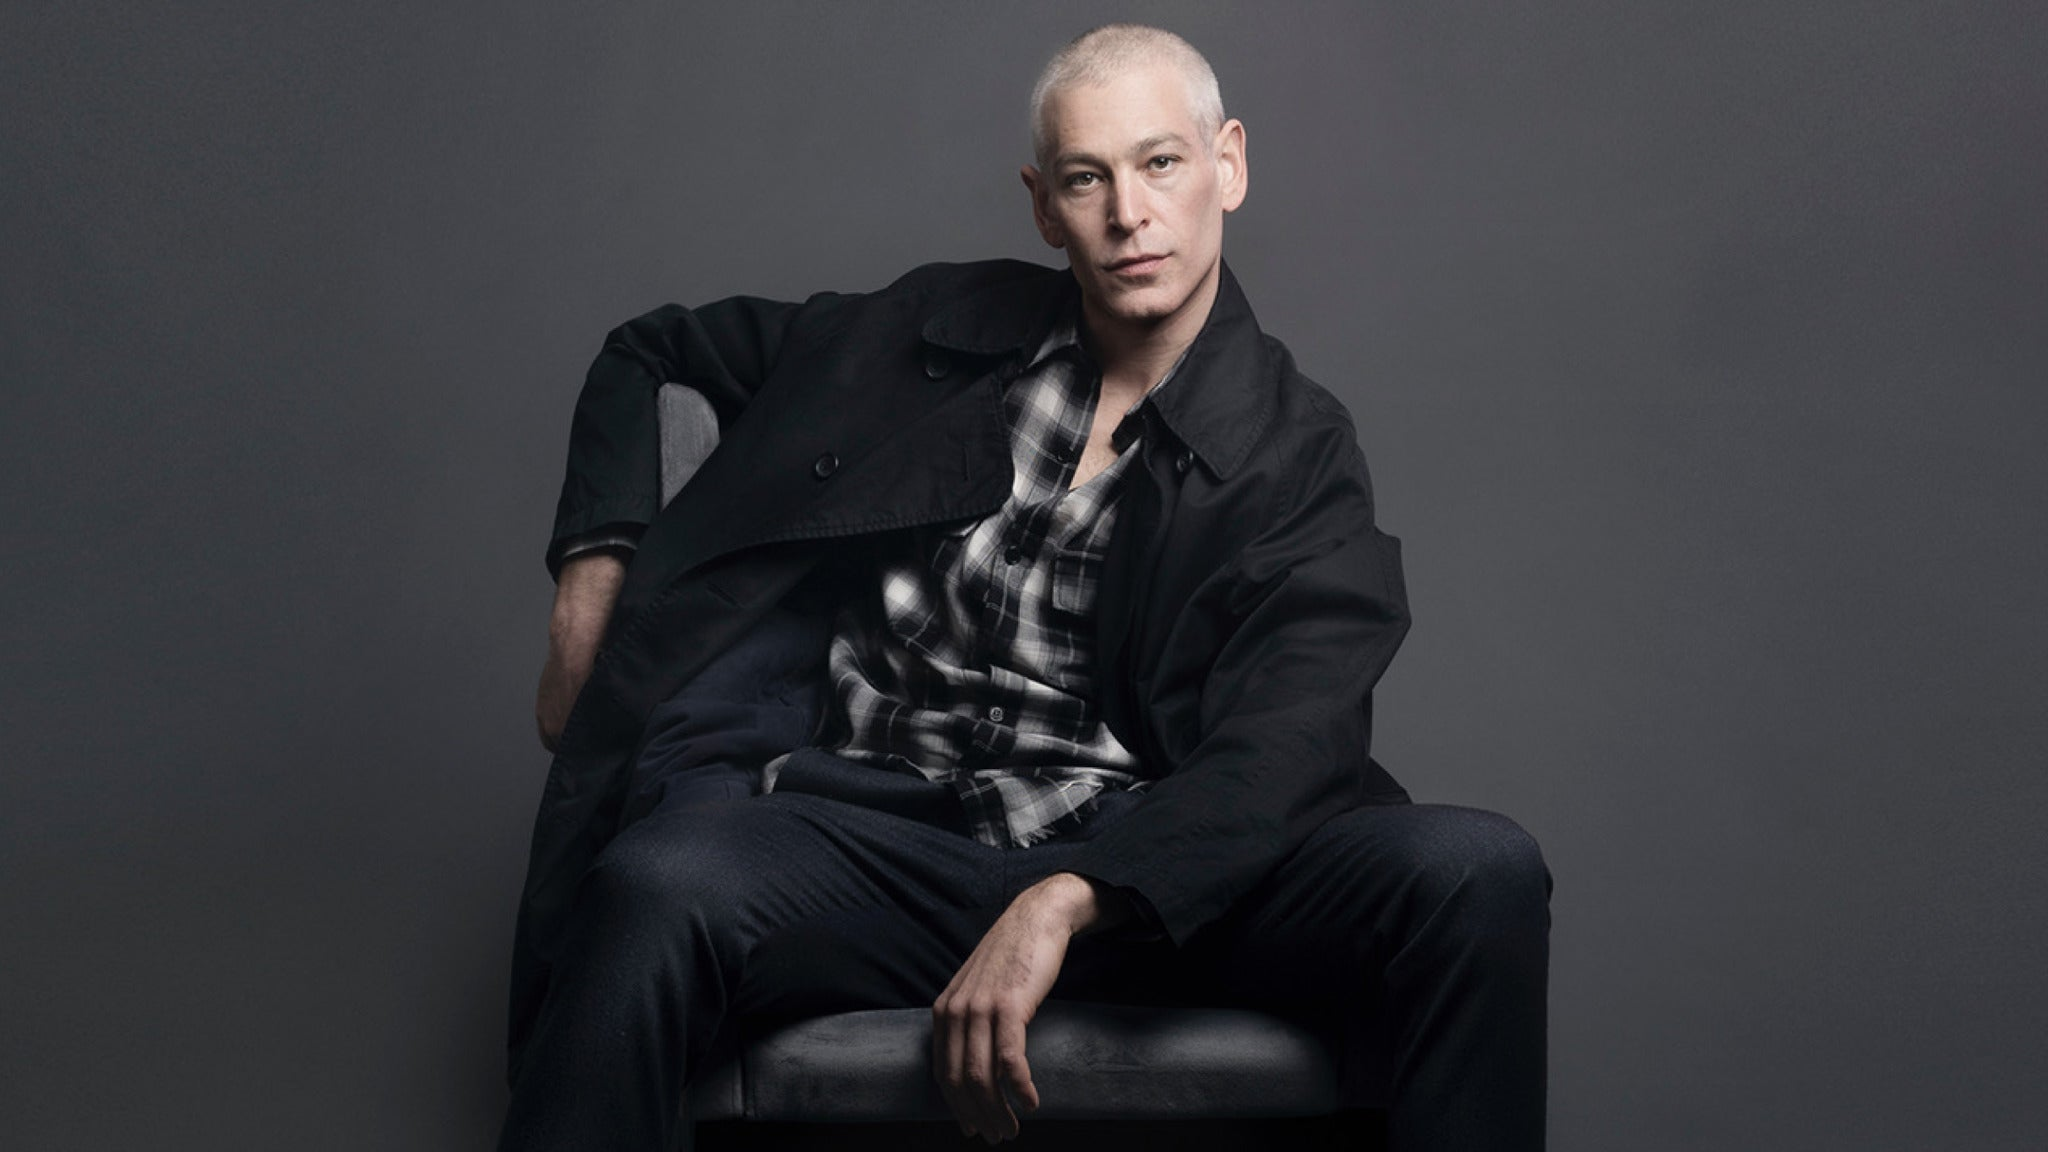 Matisyahu Plus Common Kings at Club LA